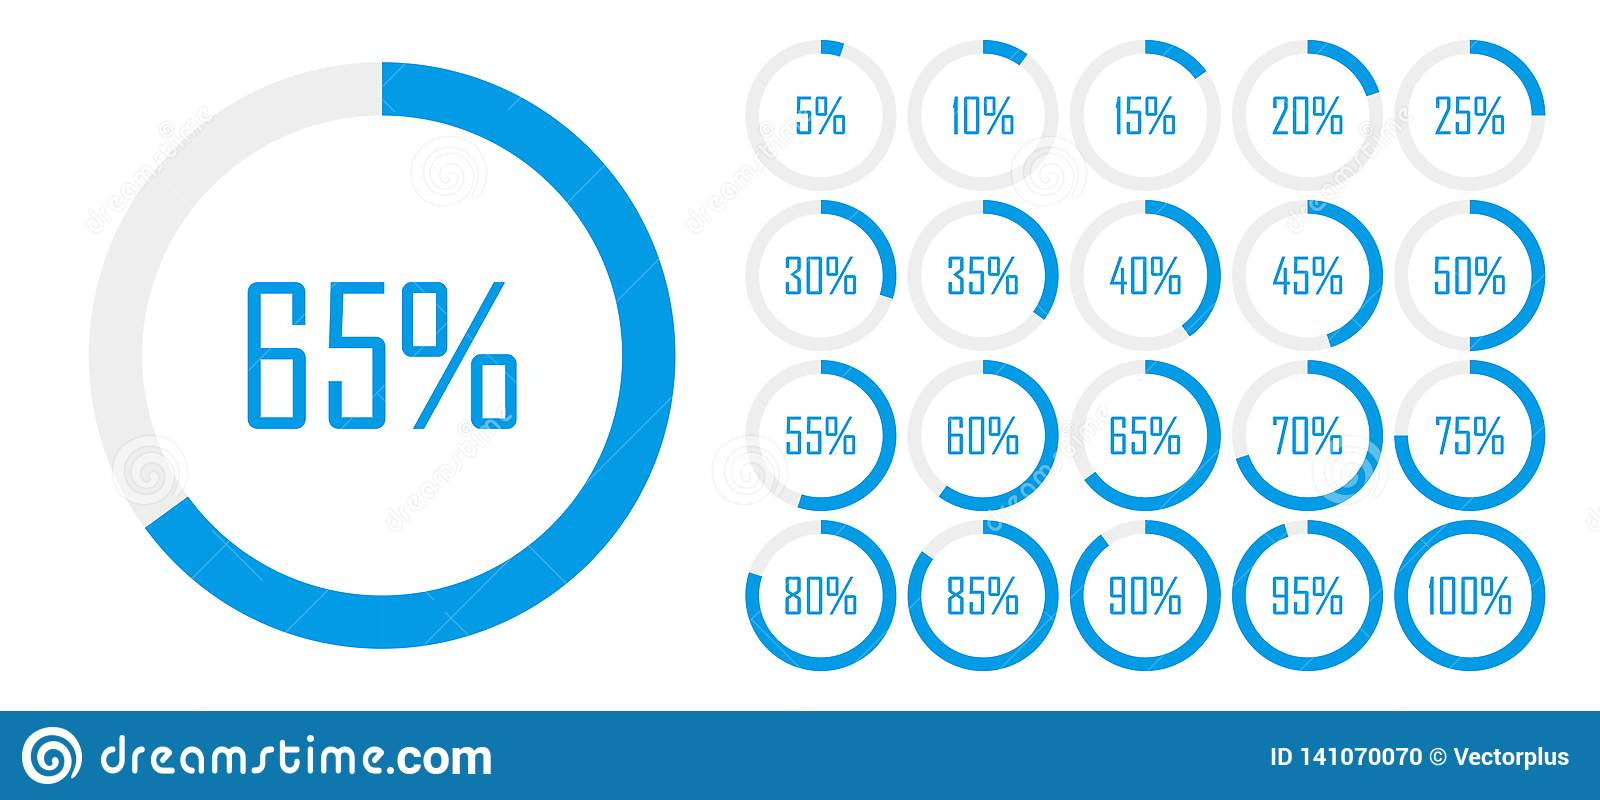 Set of circle percentage diagrams from 0 to 100 for web design, user UI interface or infographic - indicator with blue color.